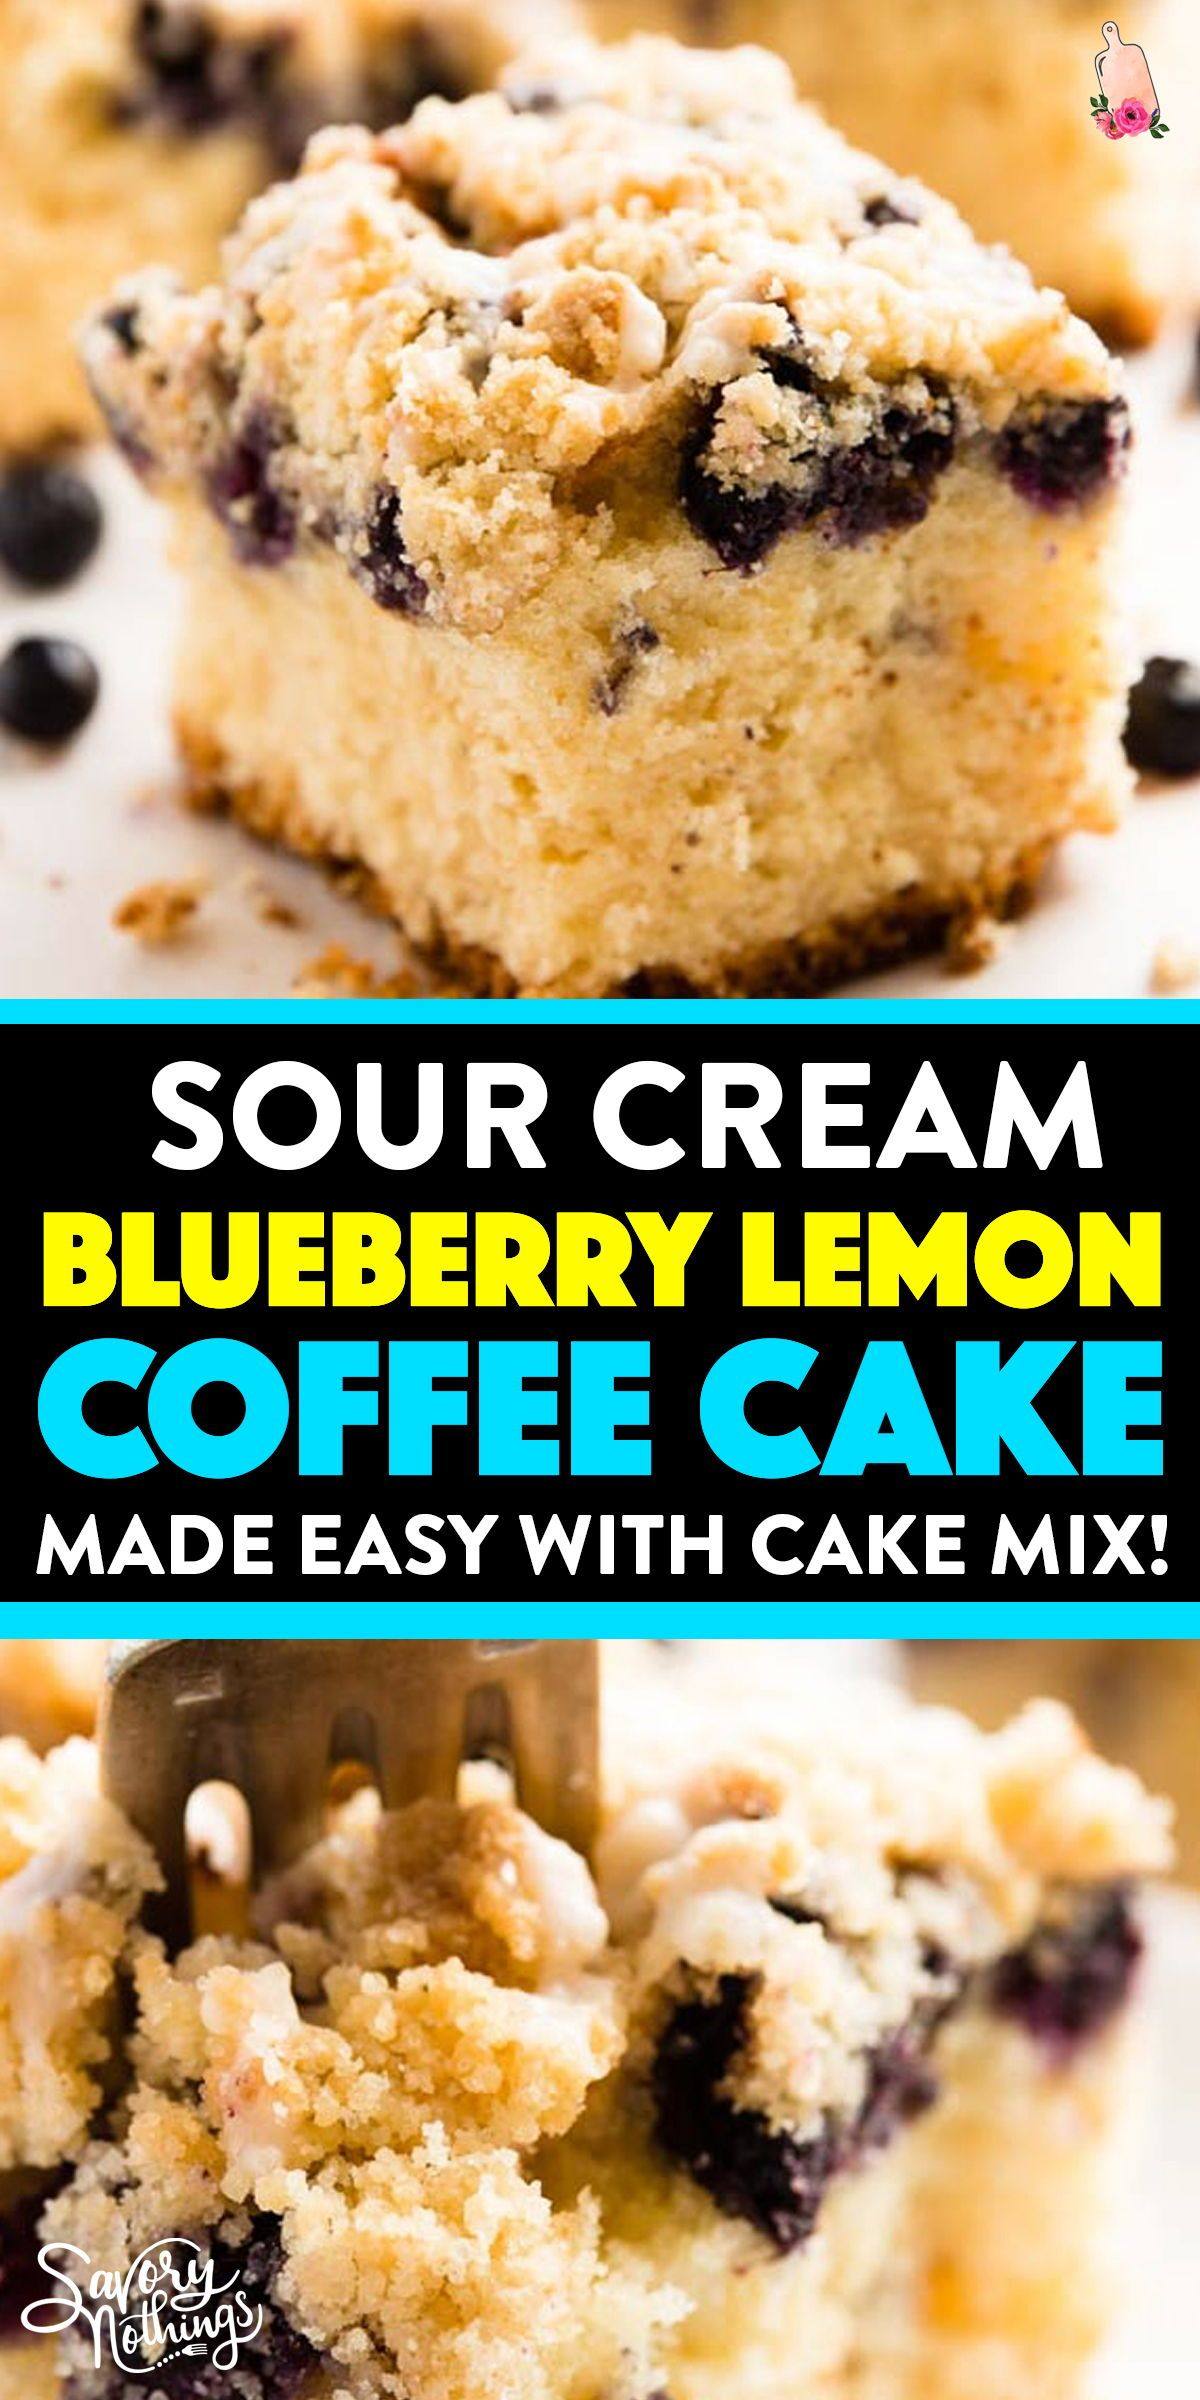 Blueberry Lemon Coffee Cake Made With Cake Mix You Won T Believe How Delicious This Turns Out Al In 2020 Blueberry Coffee Cake Lemon Blueberry Sour Cream Coffee Cake